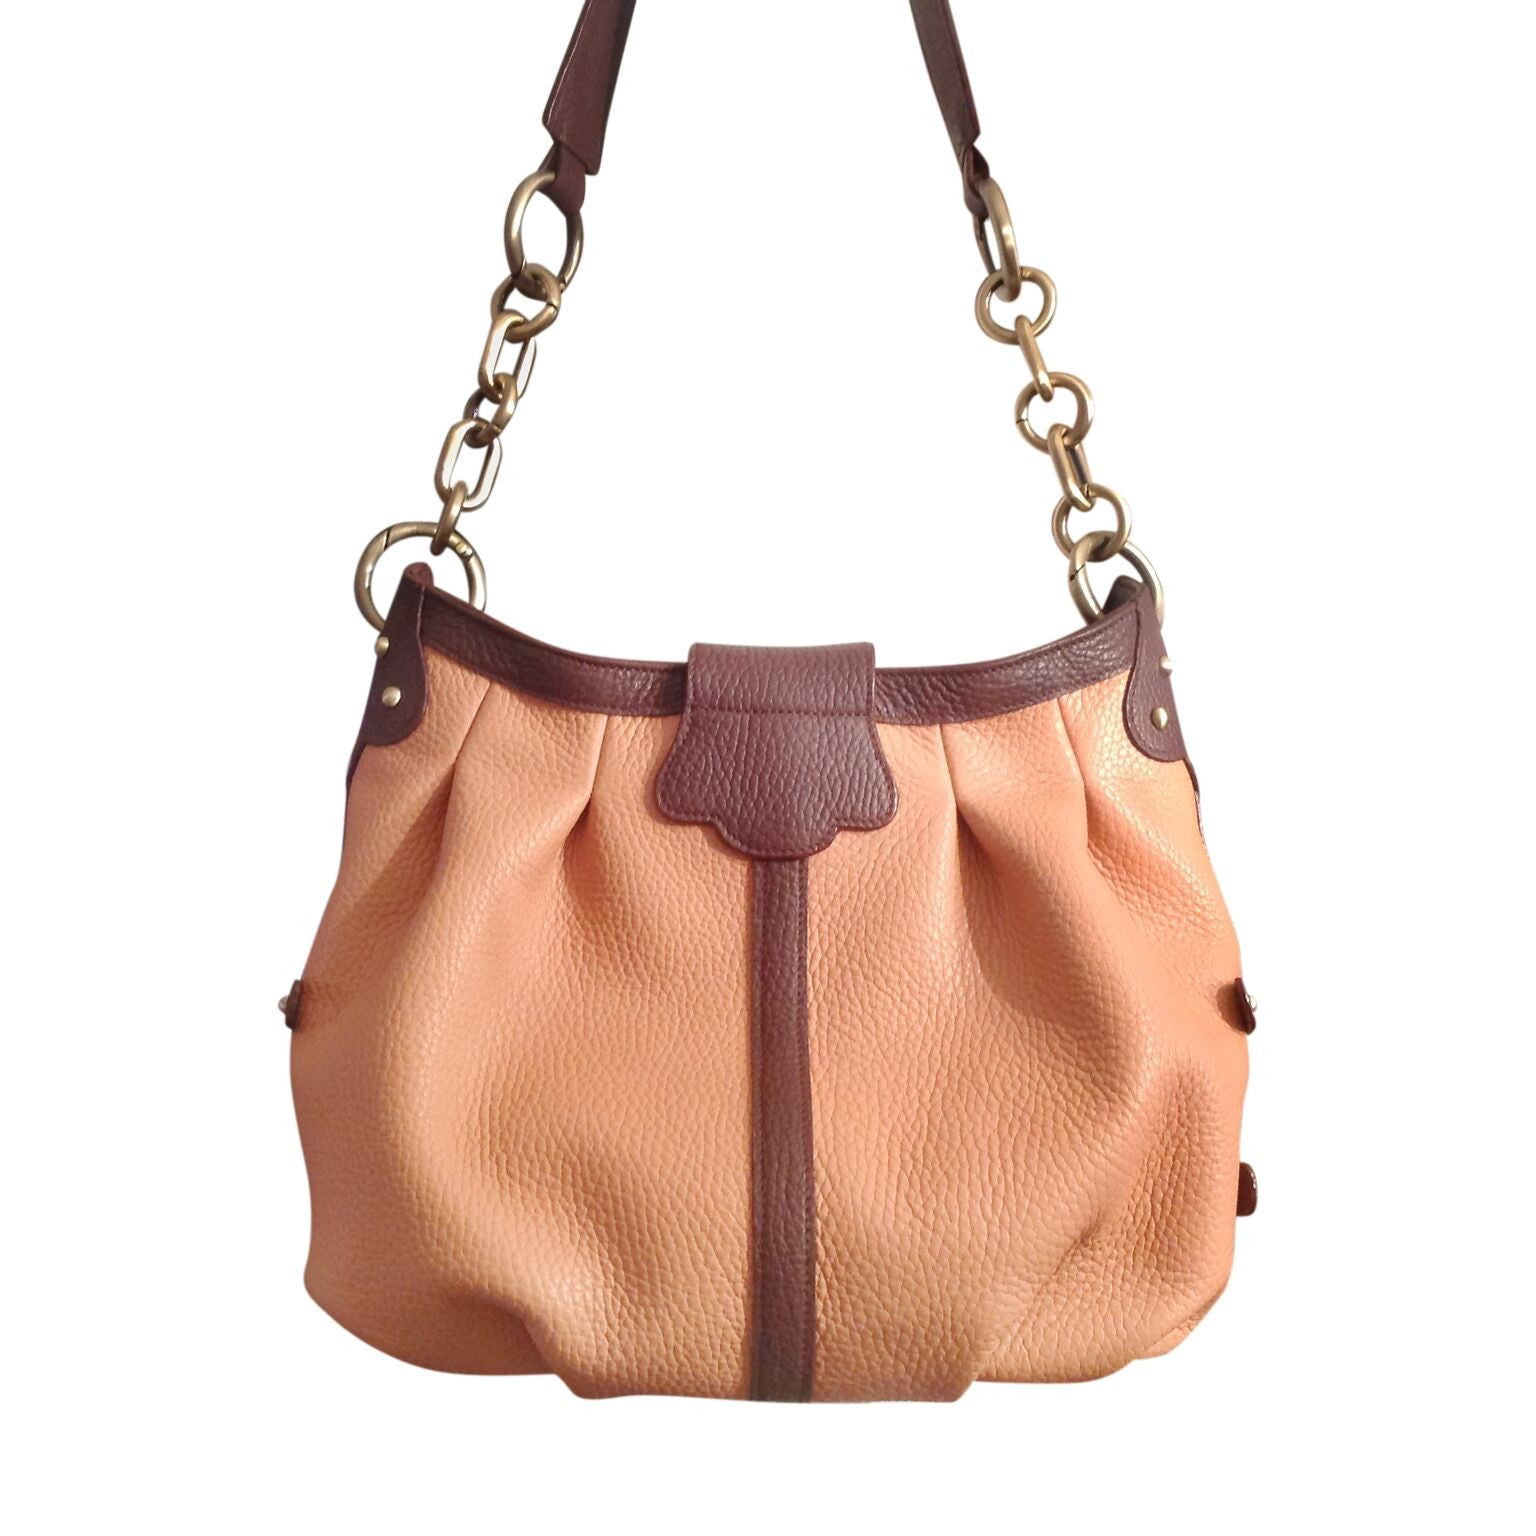 DBR Louise Hobo Bag